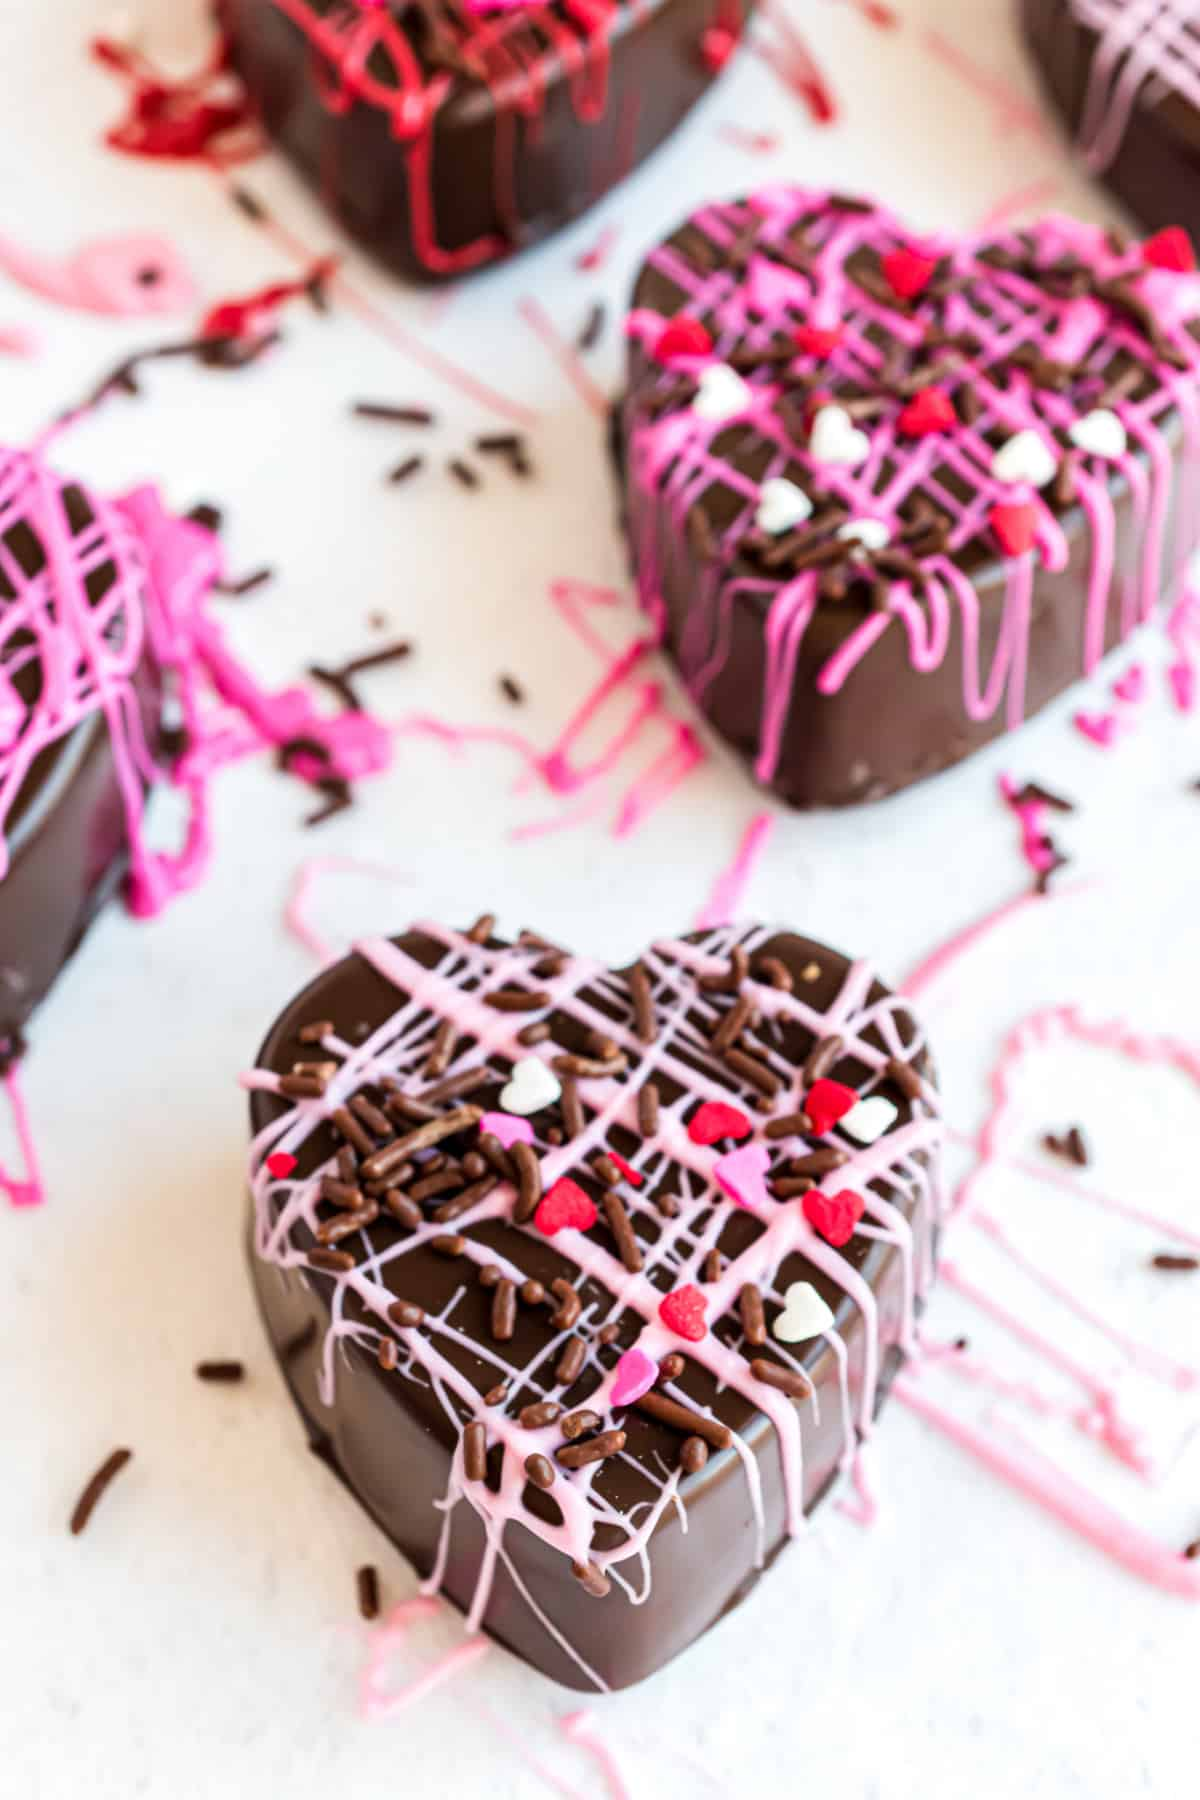 Heart shaped hot chocolate bombs with pink and red chocolate drizzle.